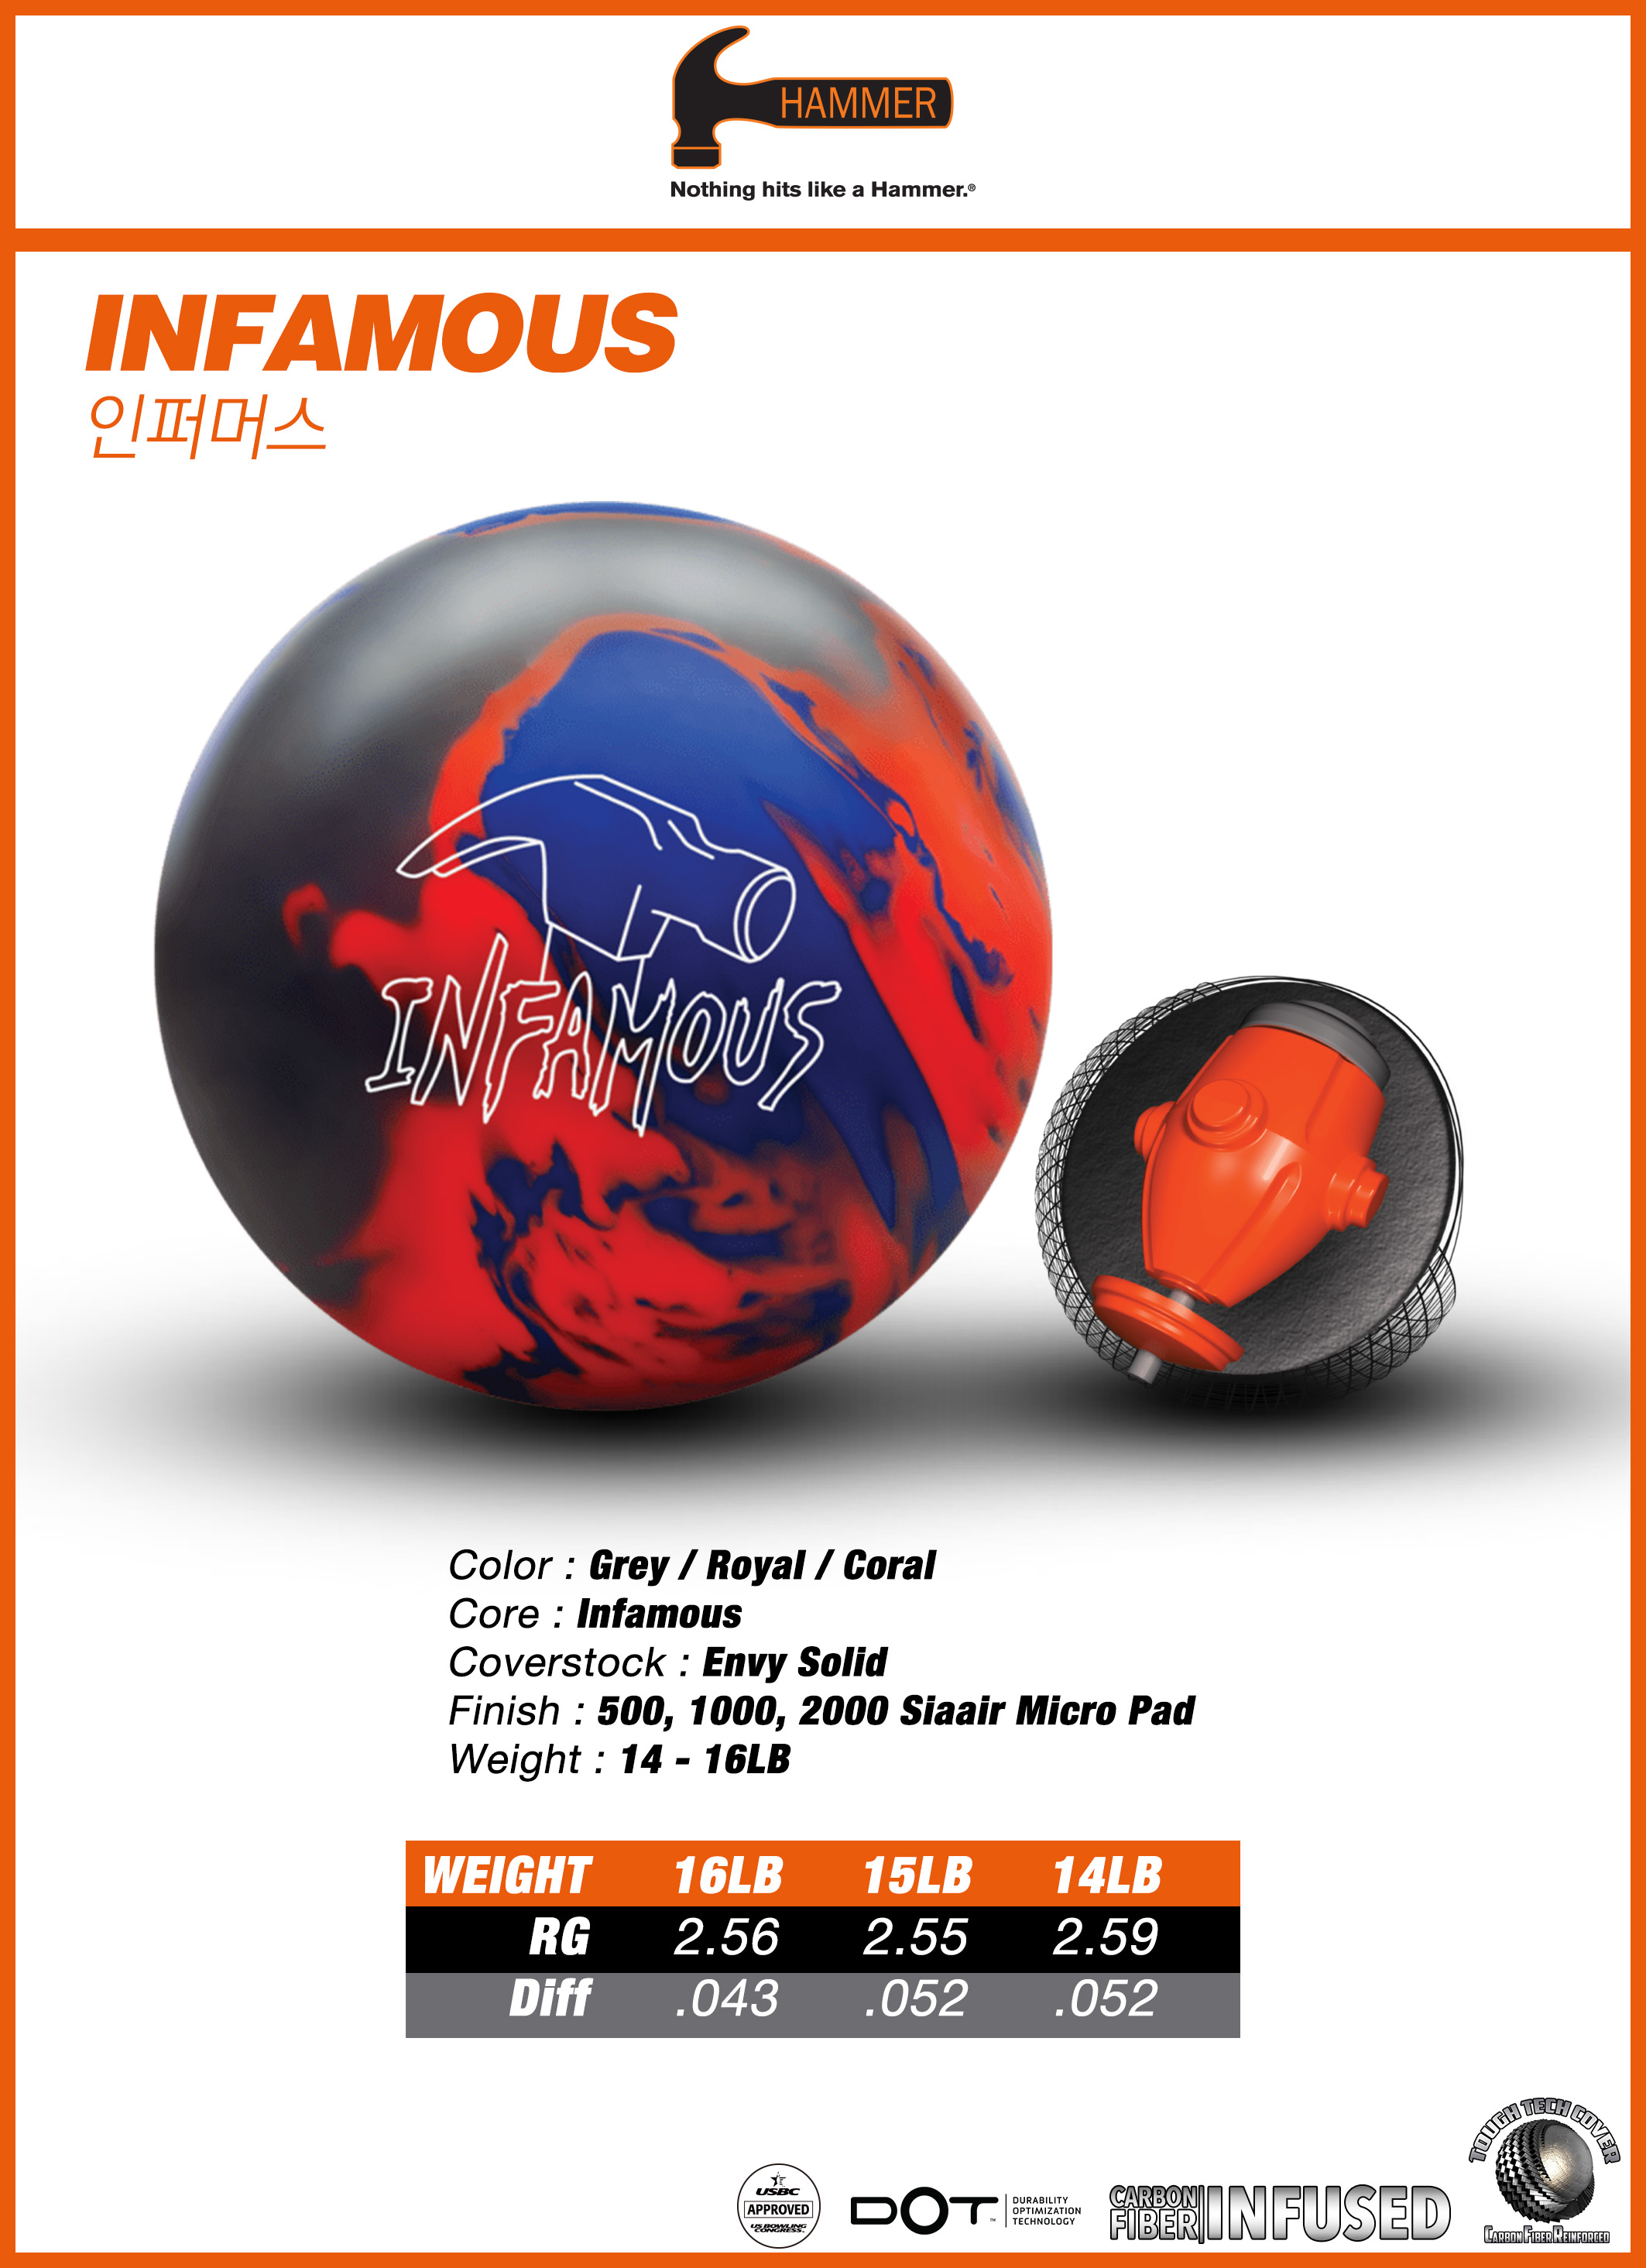 infamous_ball_review.jpg